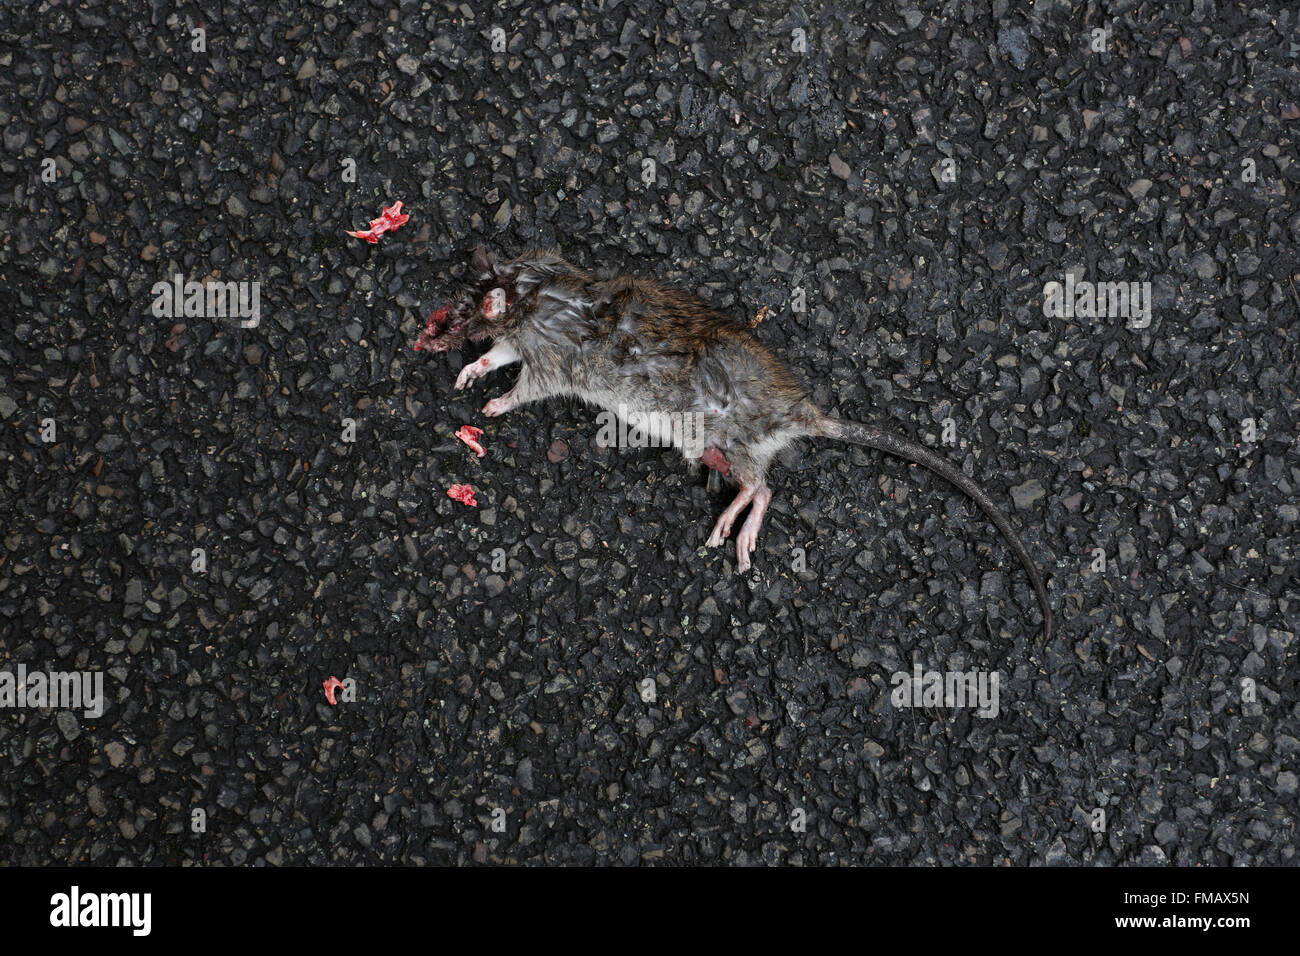 Dead rat on the street in Cheval Place, London, UK. - Stock Image